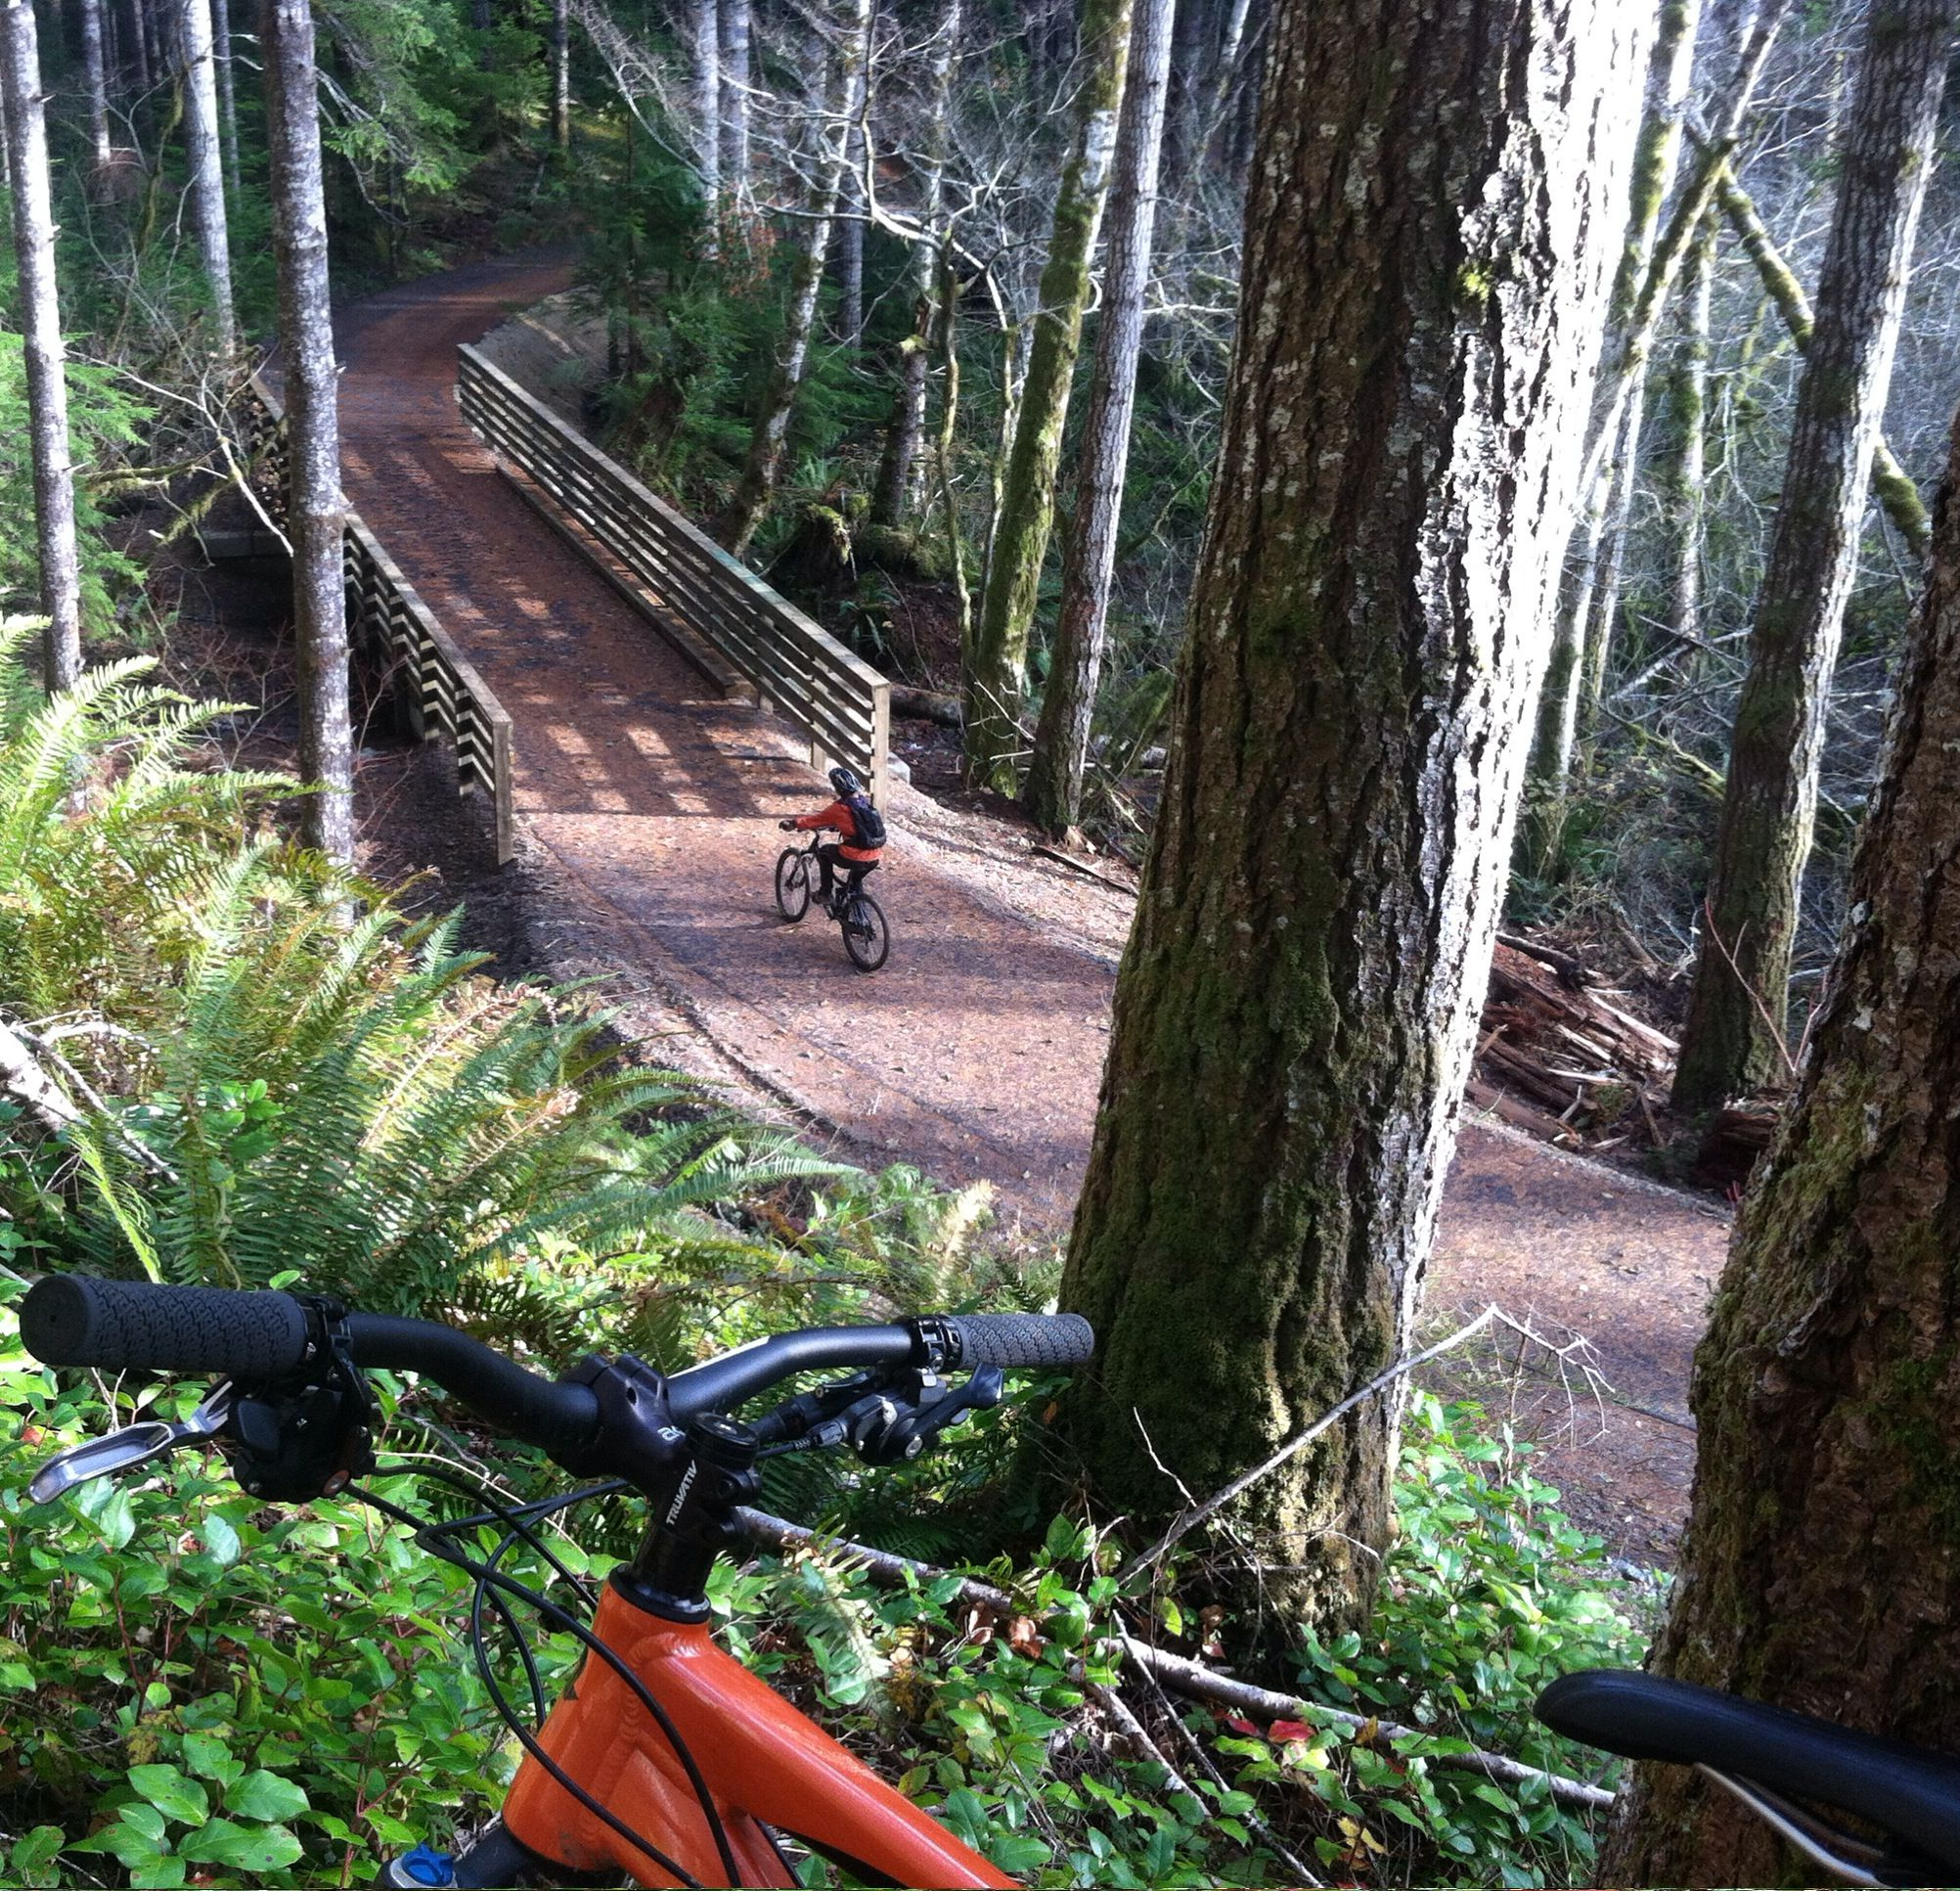 Biking The Paved Olympic Discovery Trail Near Lake Crescent In